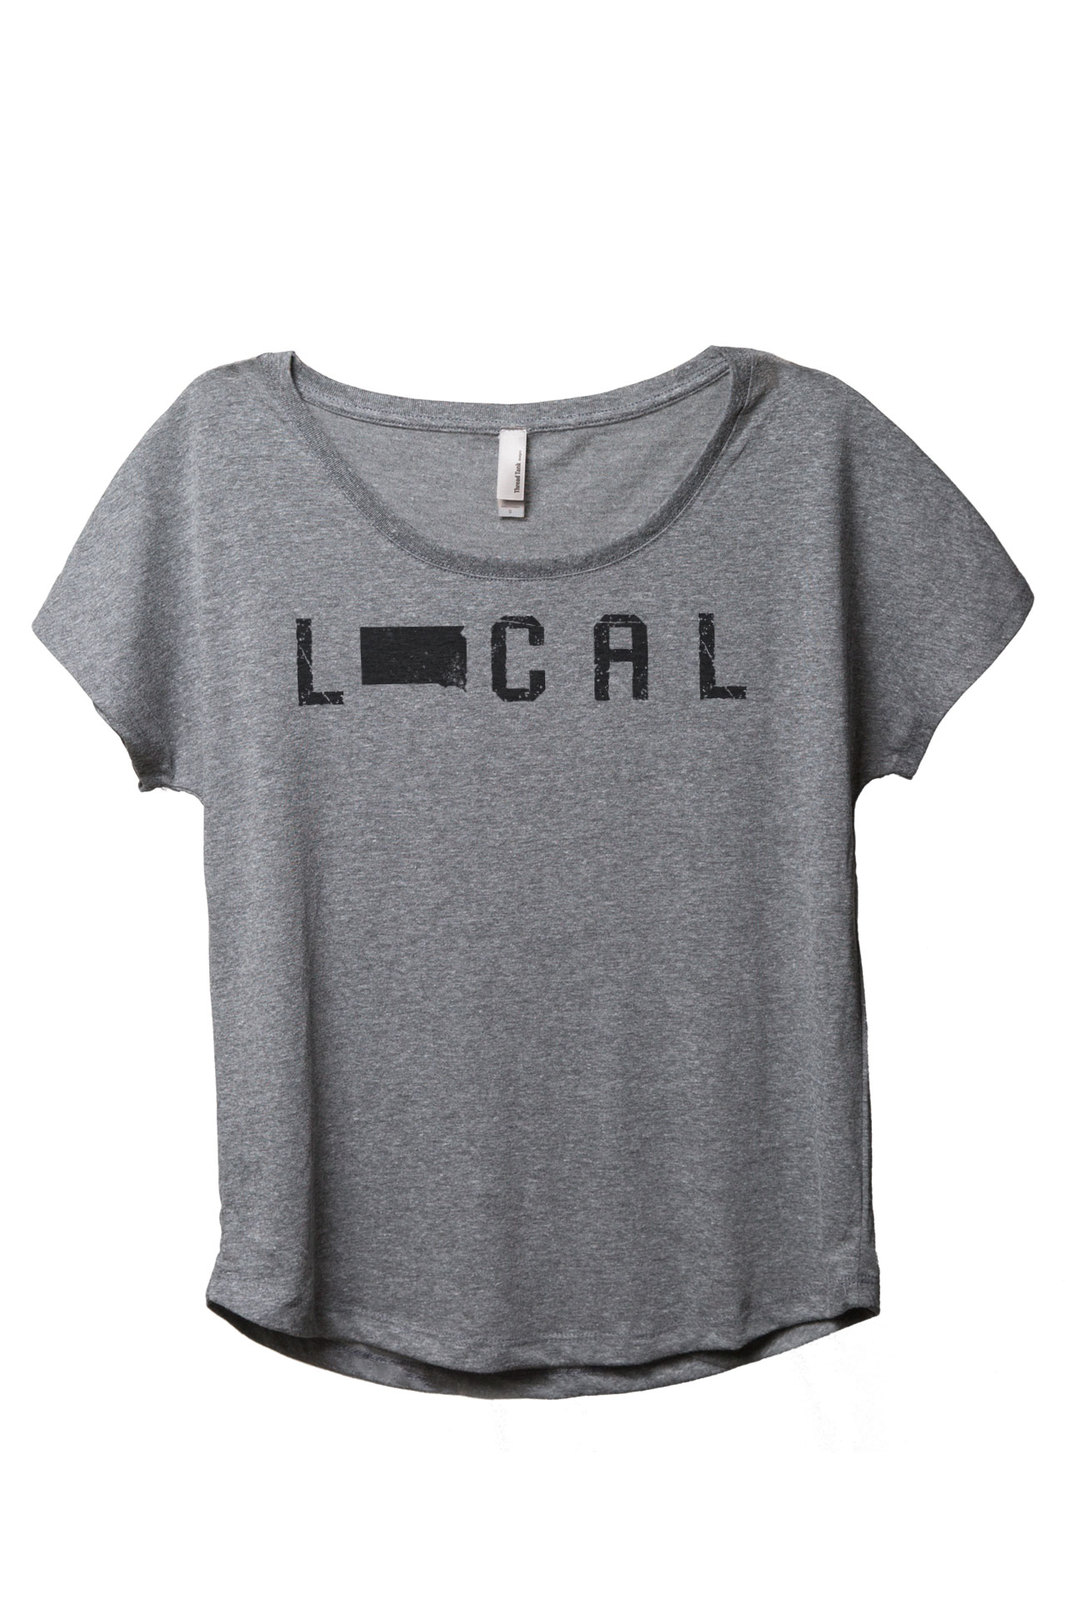 Wo localsd hgry blk dlm